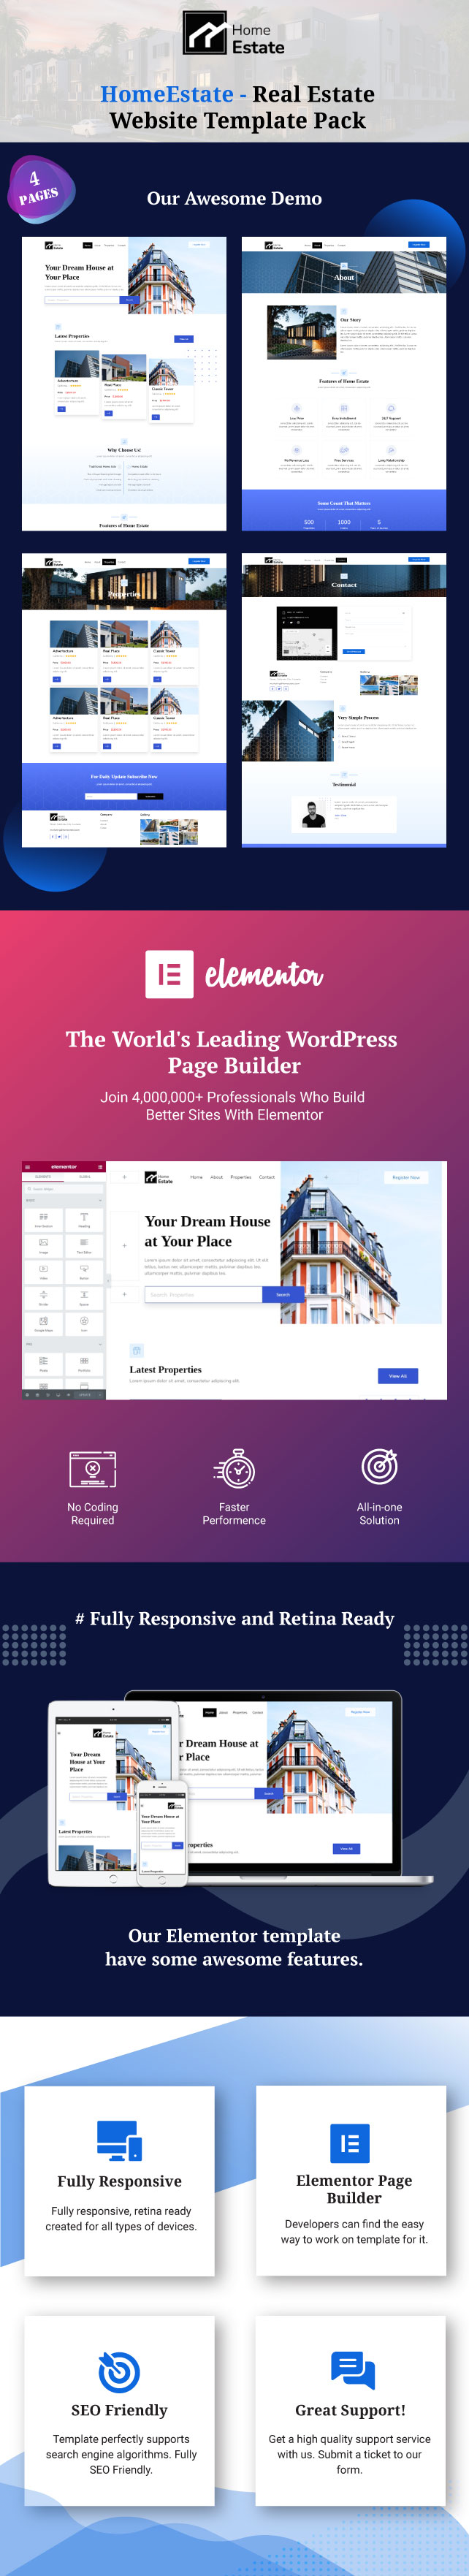 homeestate-real-estate-template-pack